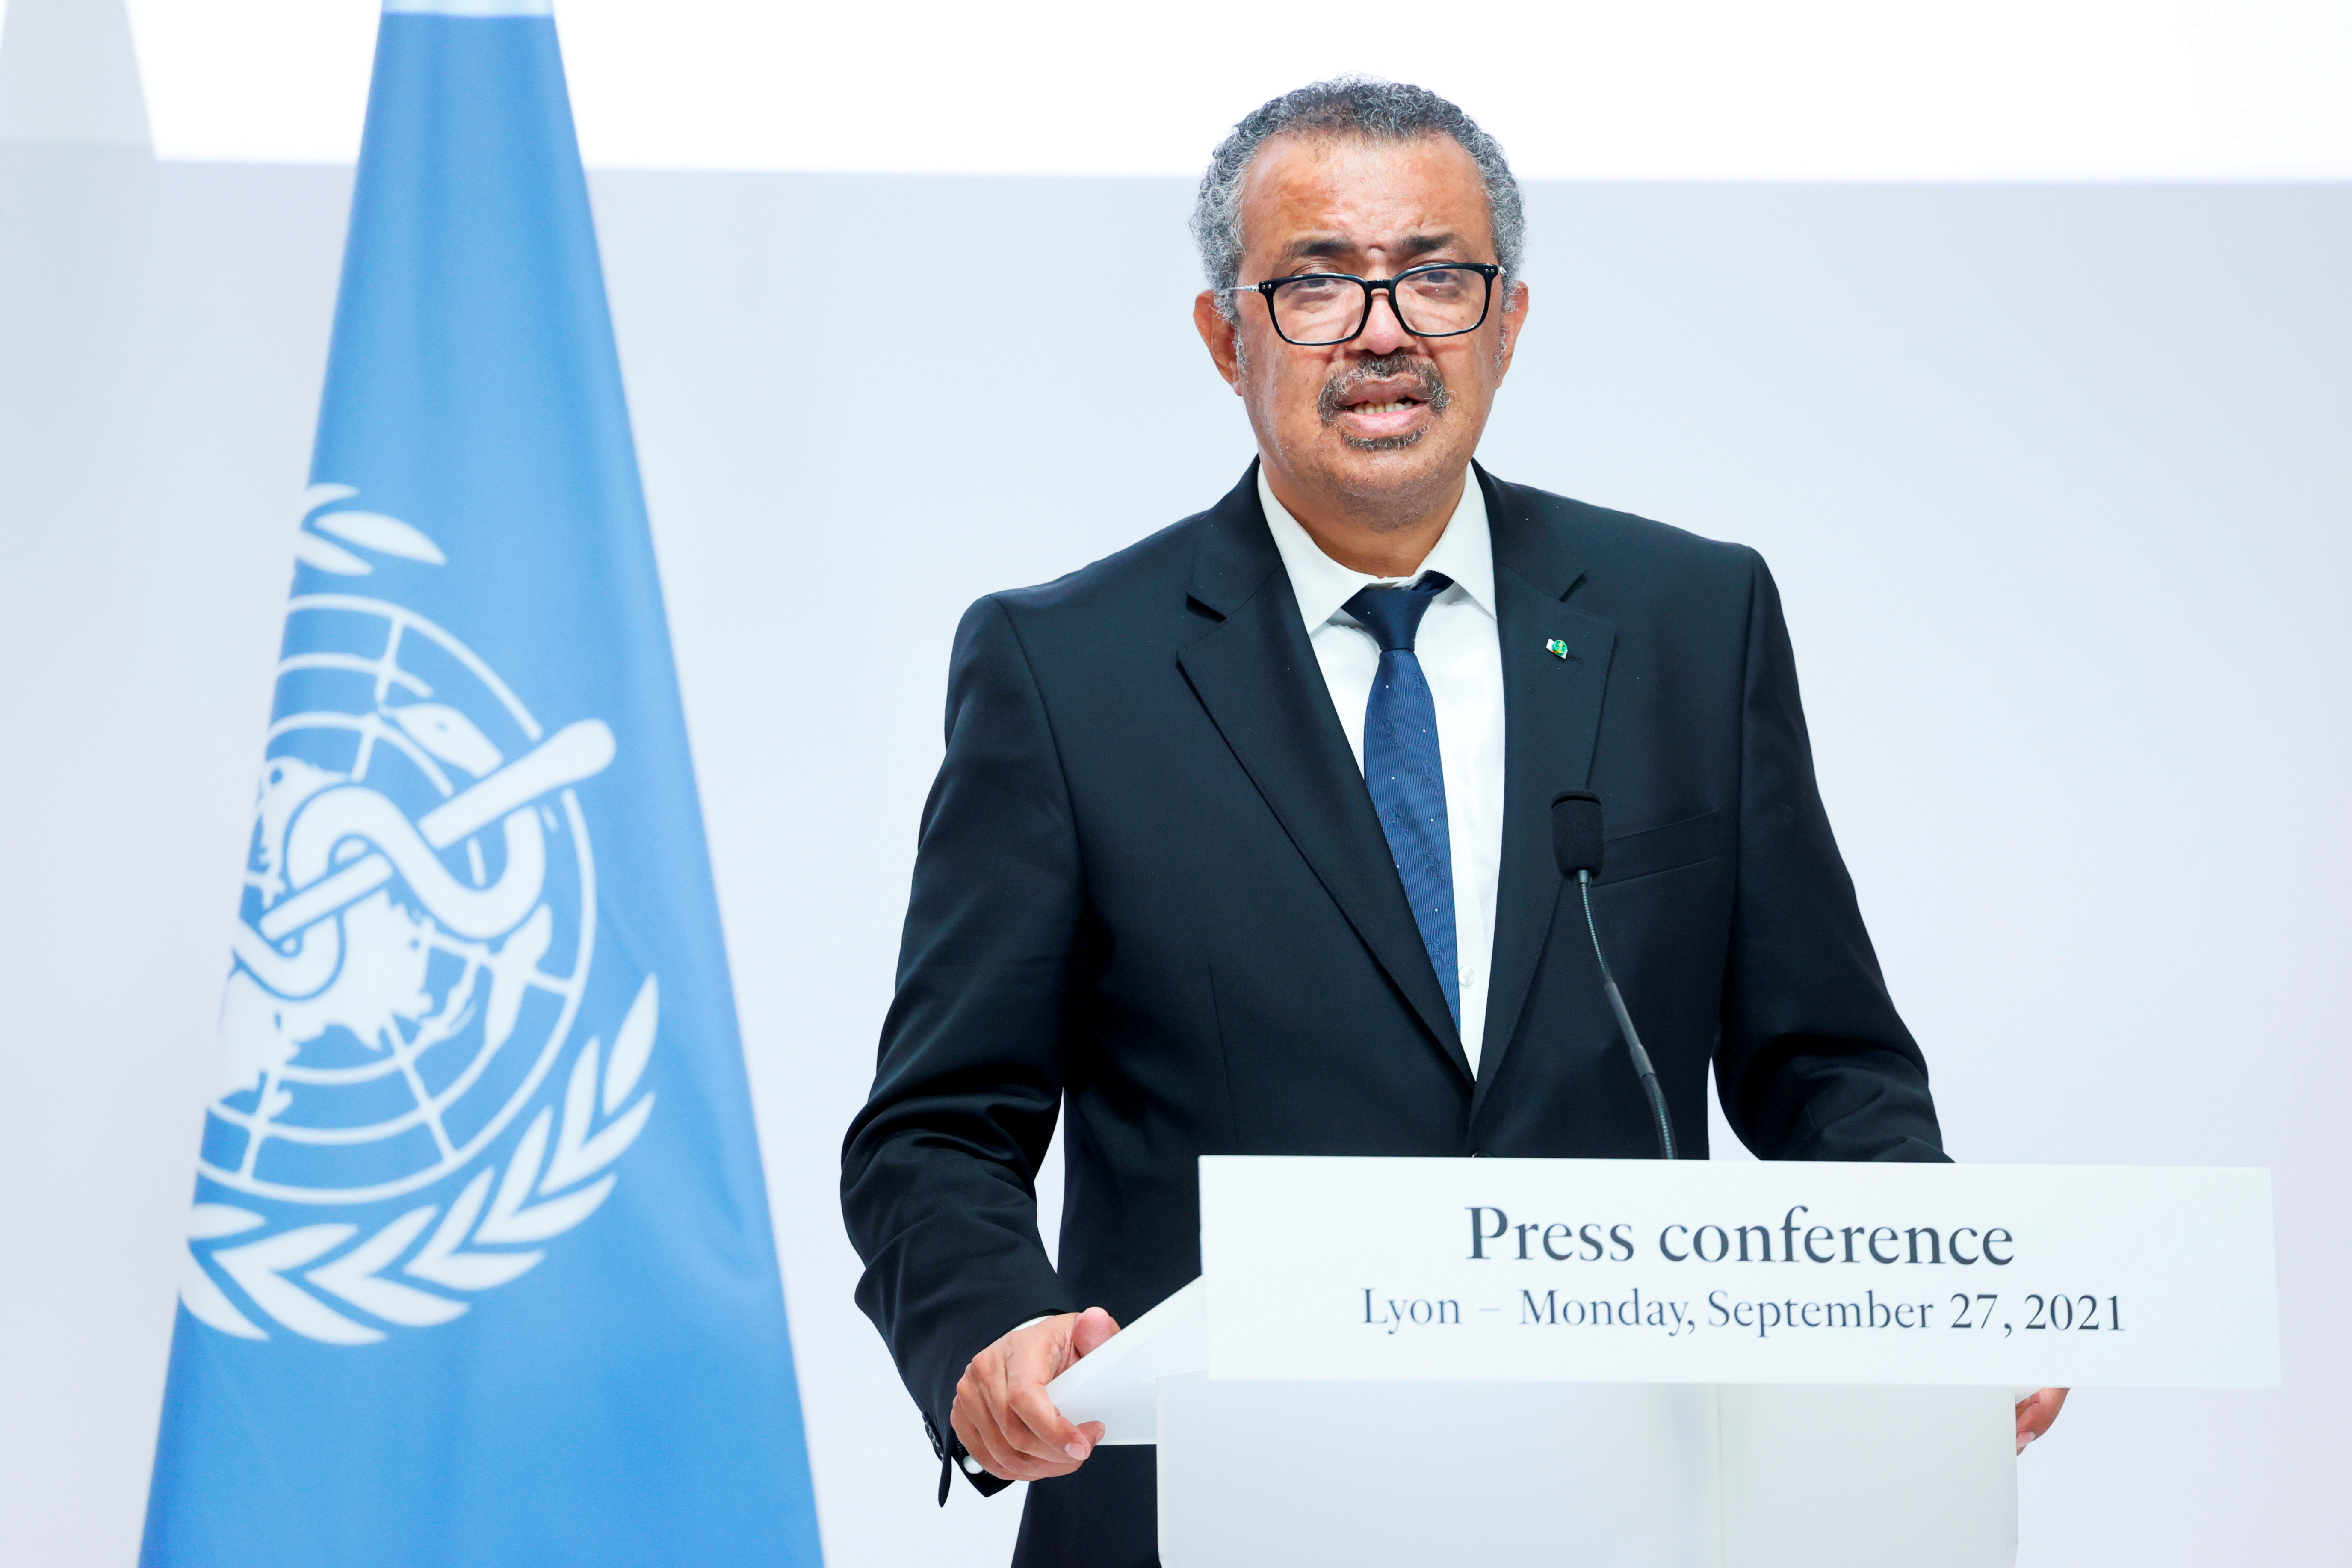 WHO Director-General Tedros Adhanom Ghebreyesus speaks during a news conference after a ceremony for the opening of the WHO Academy, in Lyon, France, September 27, 2021. REUTERS/Denis Balibouse